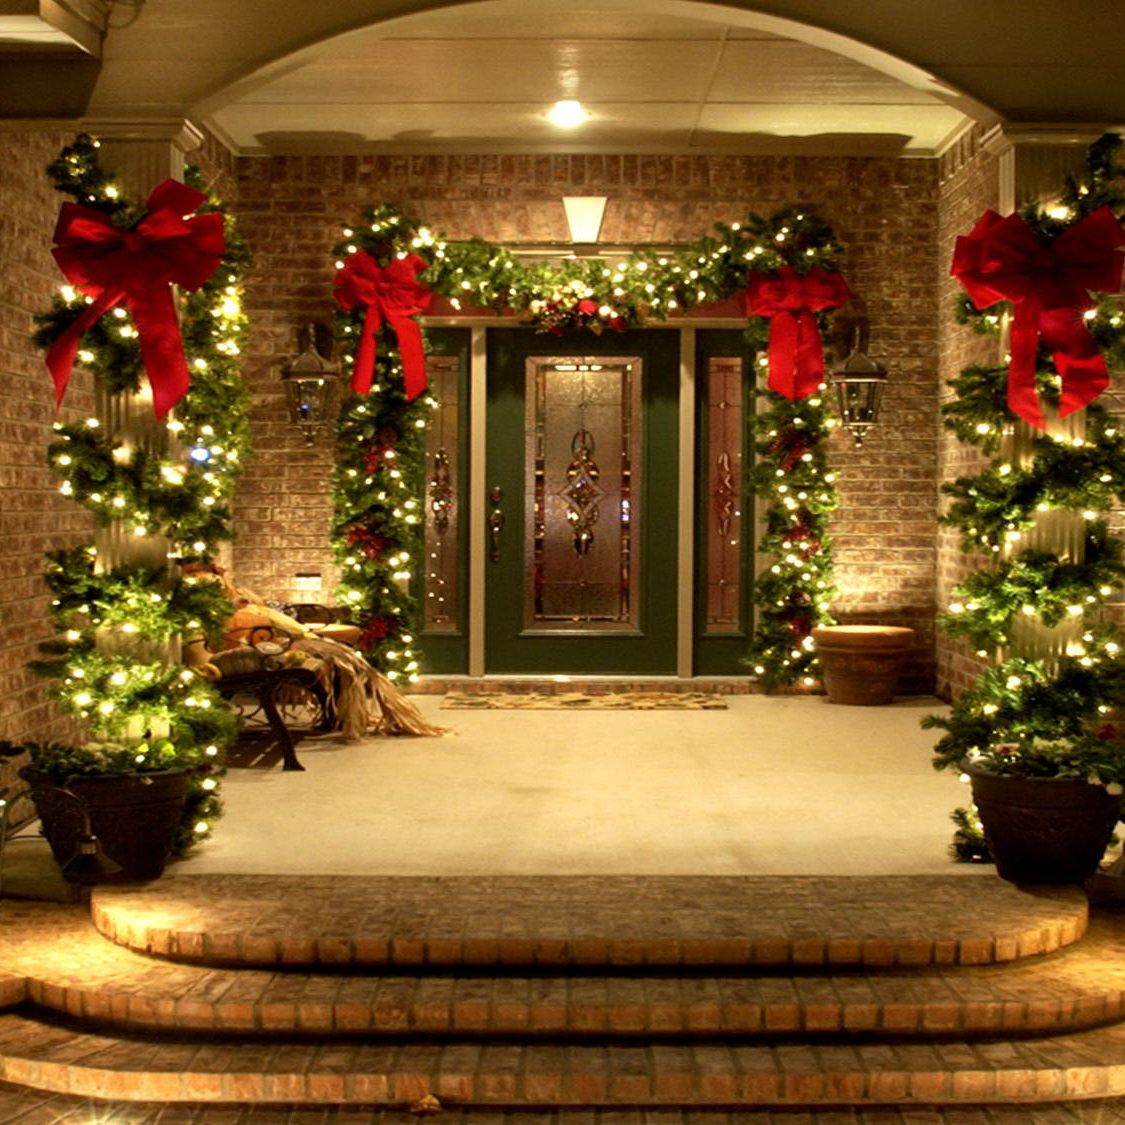 18 most striking diy christmas porch decorations that will melt your heart - How To Decorate House For Christmas